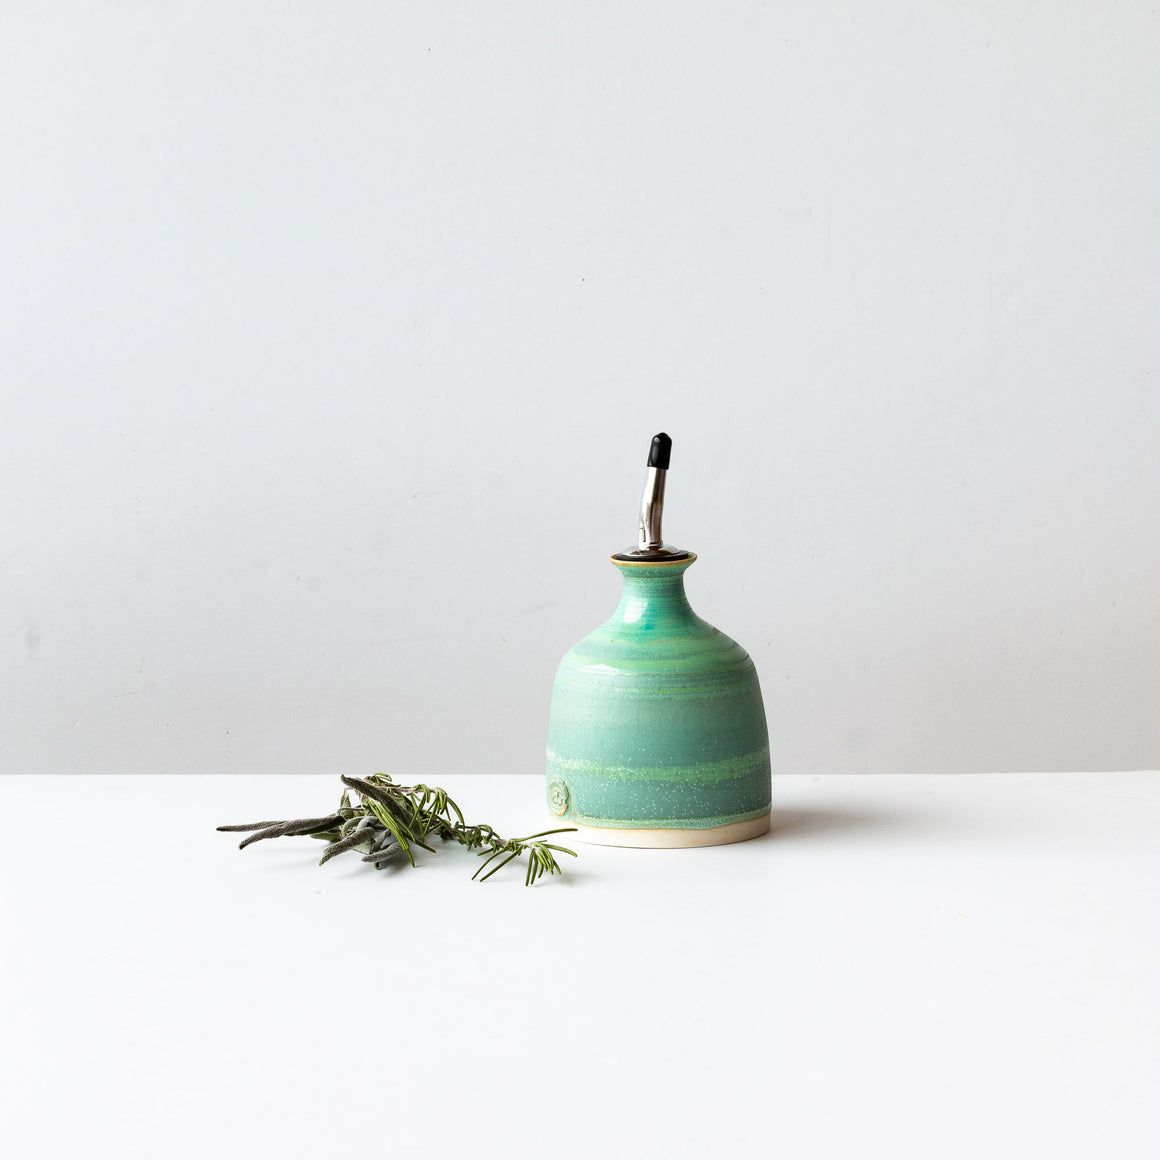 Handcrafted Stoneware Little Turquoise Oil Bottle - Sold by Chic & Basta